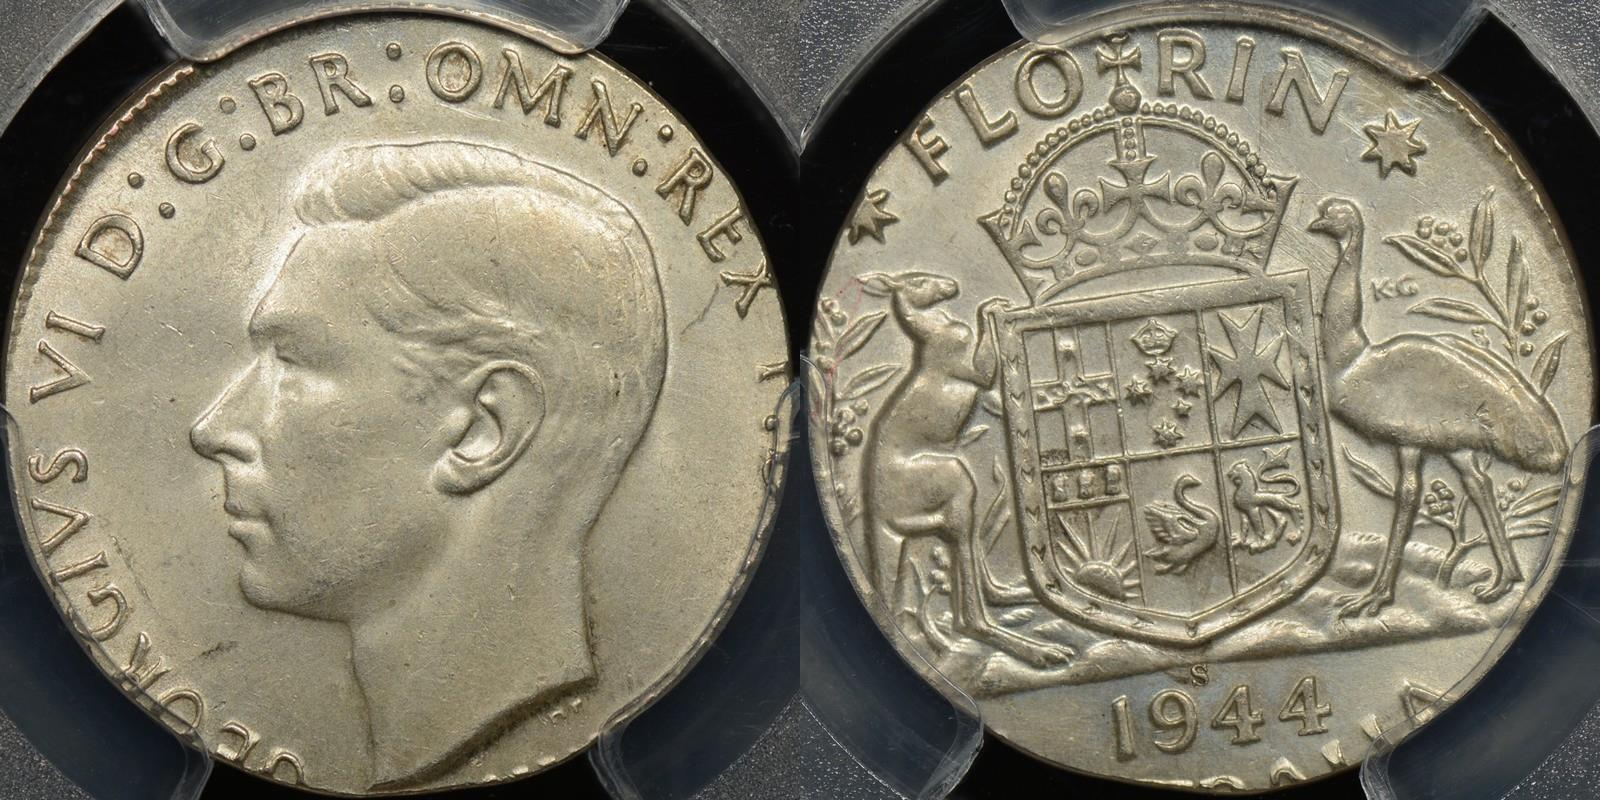 Wrong planchet error Australian 1944s florin struck on shilling planchet Choice Uncirculated PCGS MS63